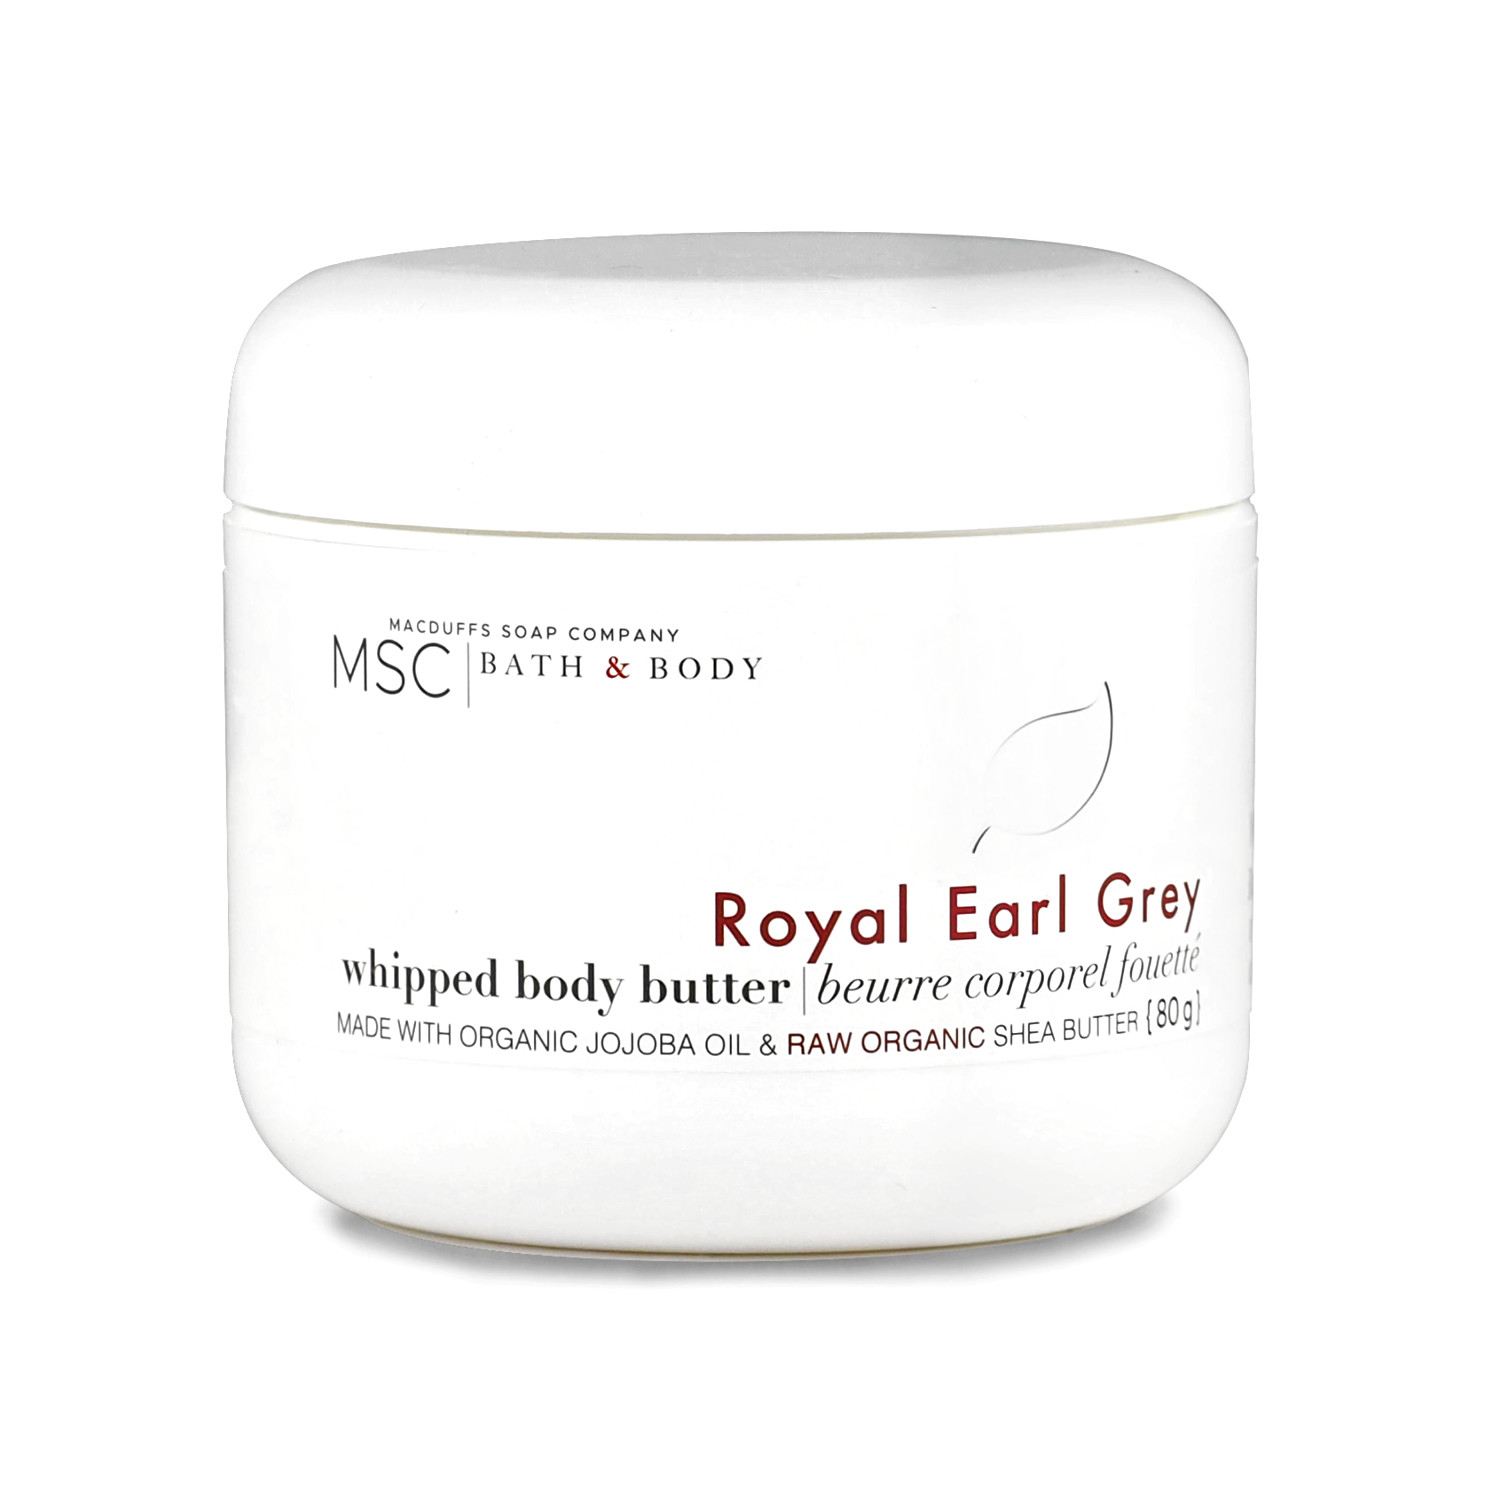 Royal Earl Grey Whipped Body Butter